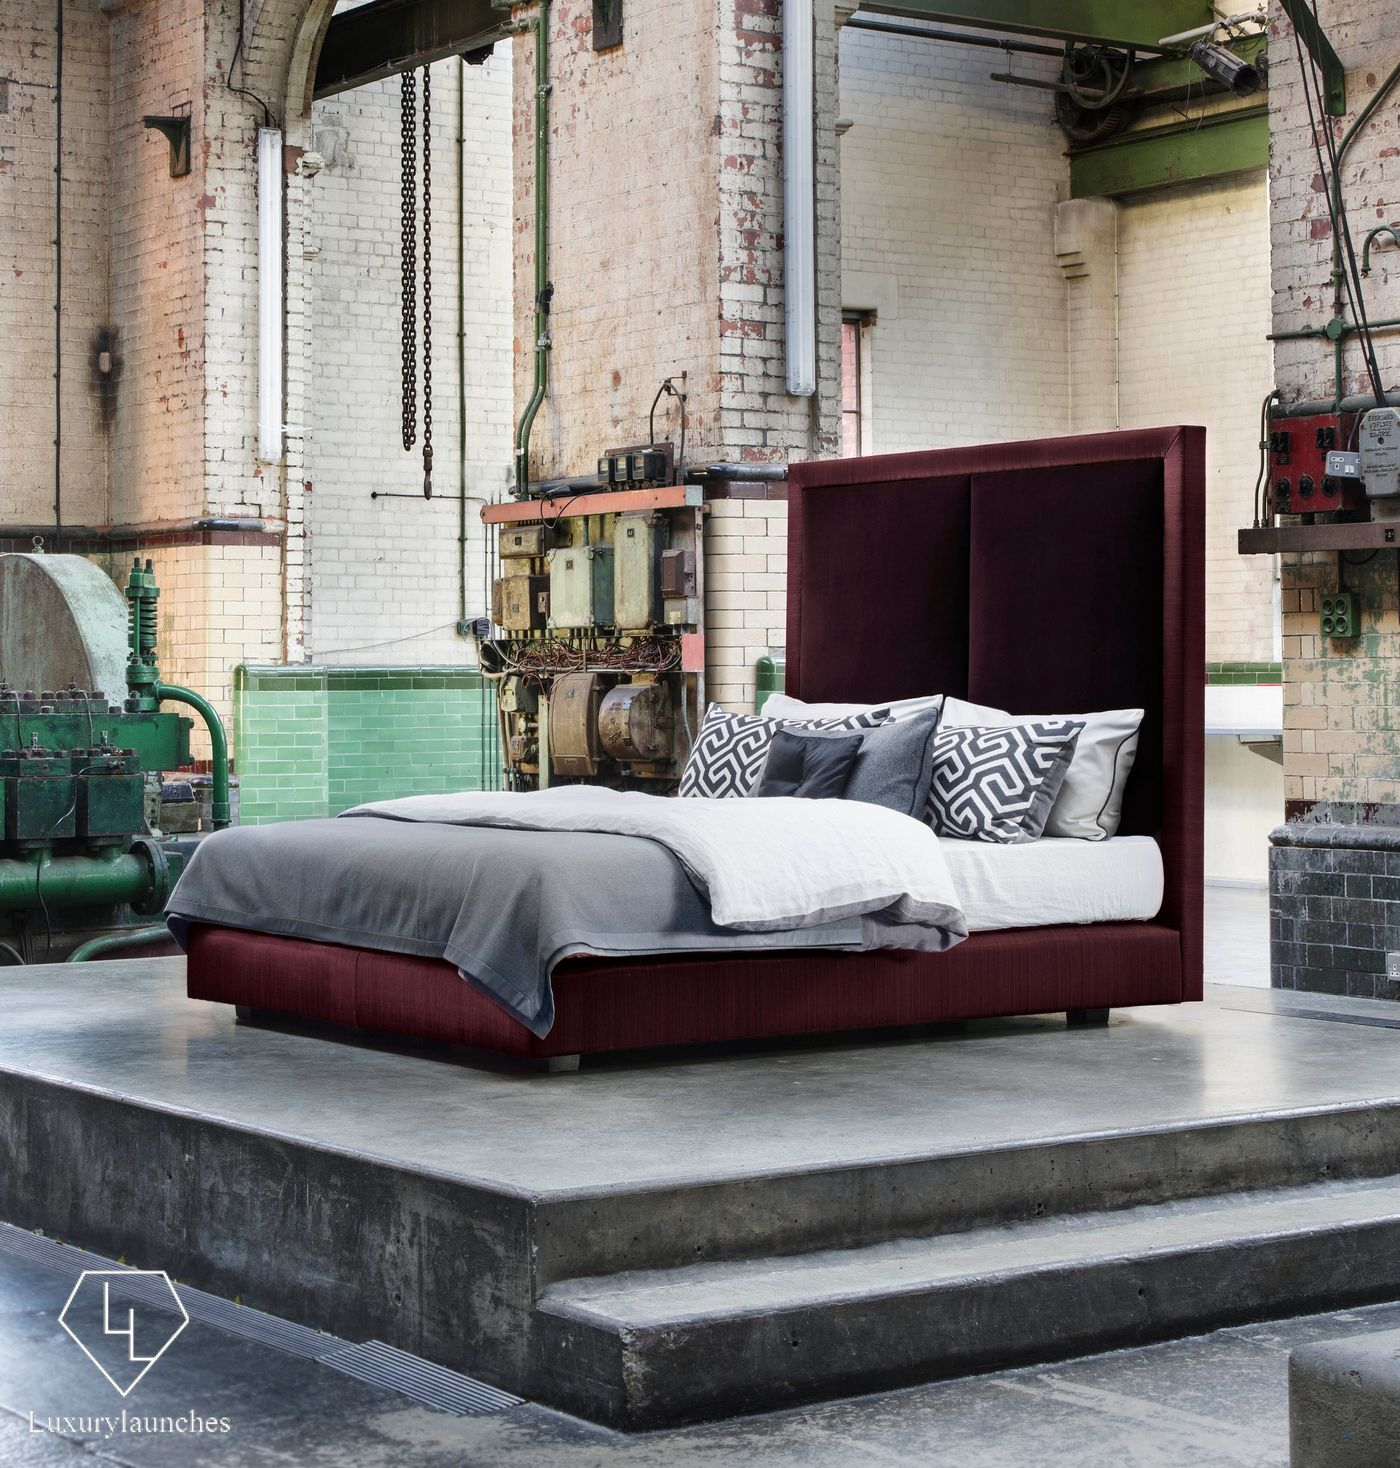 Bed Designs 2017 Savoir The Rolls Royce Of Beds Has Launched Two New Luxurious Bed